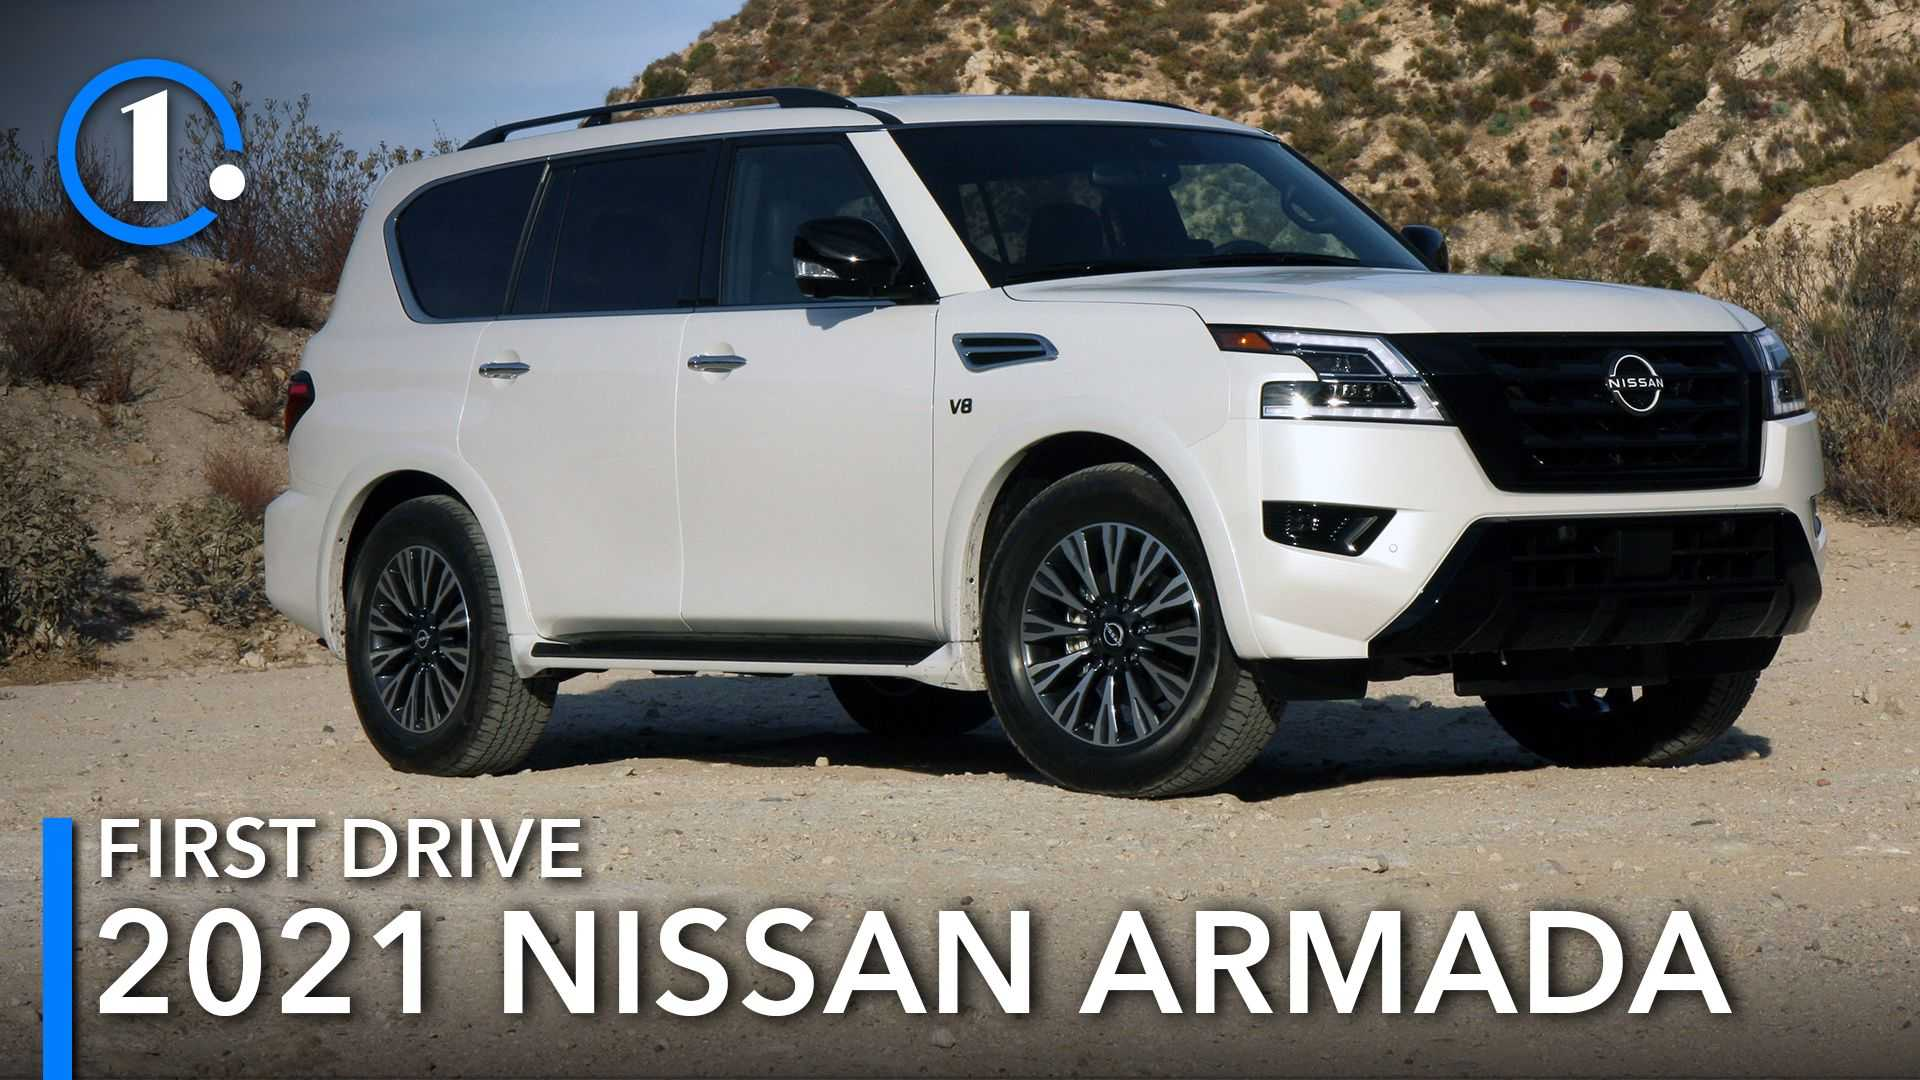 2021 Nissan Armada First Drive Review: Single-Purpose Greatness